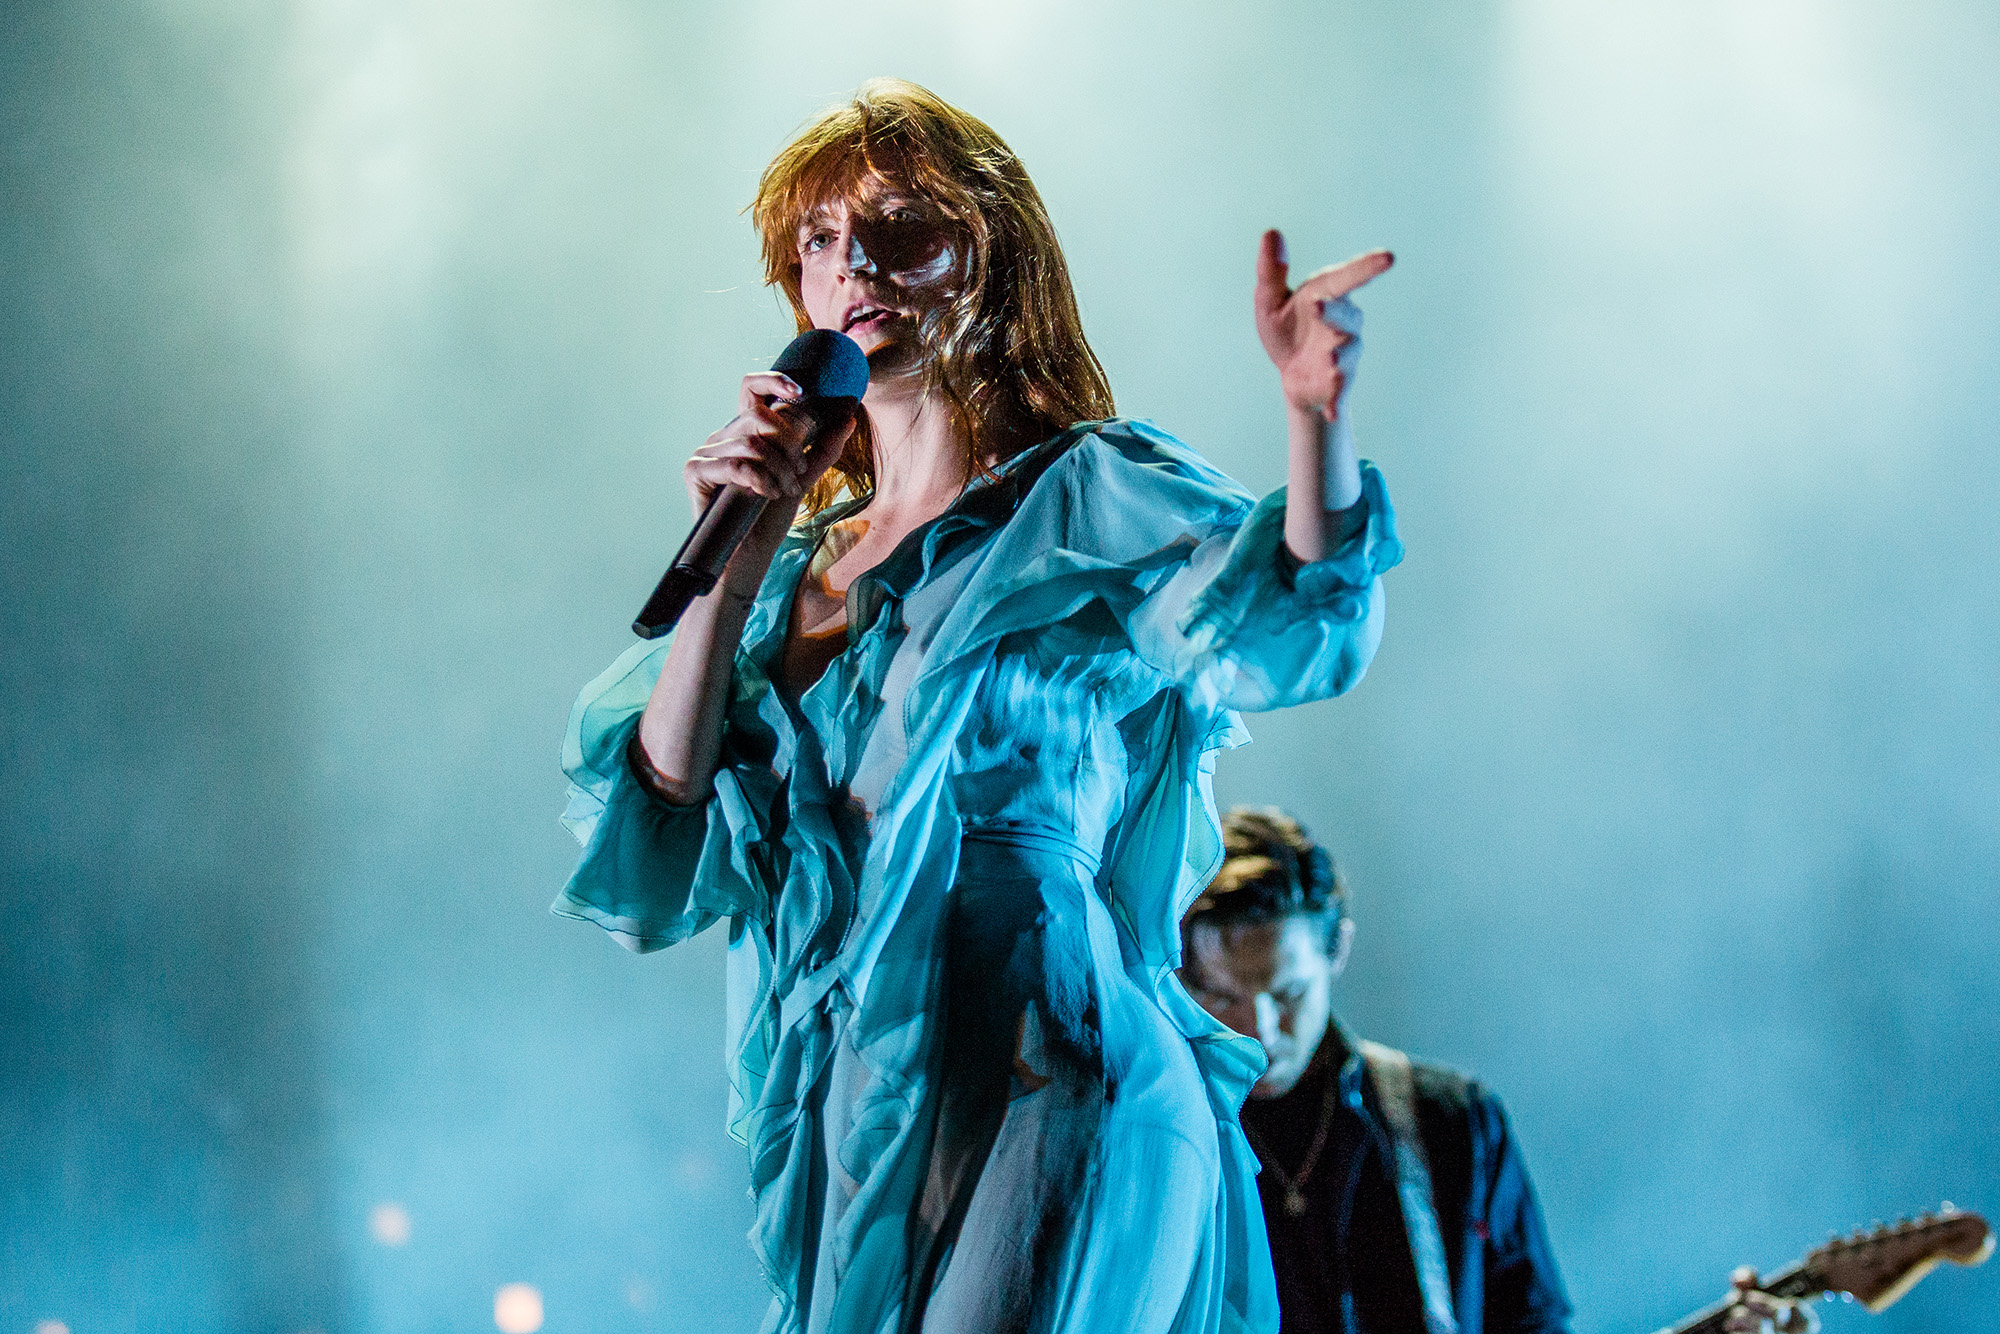 GULF SHORES, AL - MAY 22:  Florence Welch of Florence + The Machine performs at the Hangout Music Festival on May 22, 2016 in Gulf Shores, Alabama.  (Photo by Josh Brasted/WireImage)